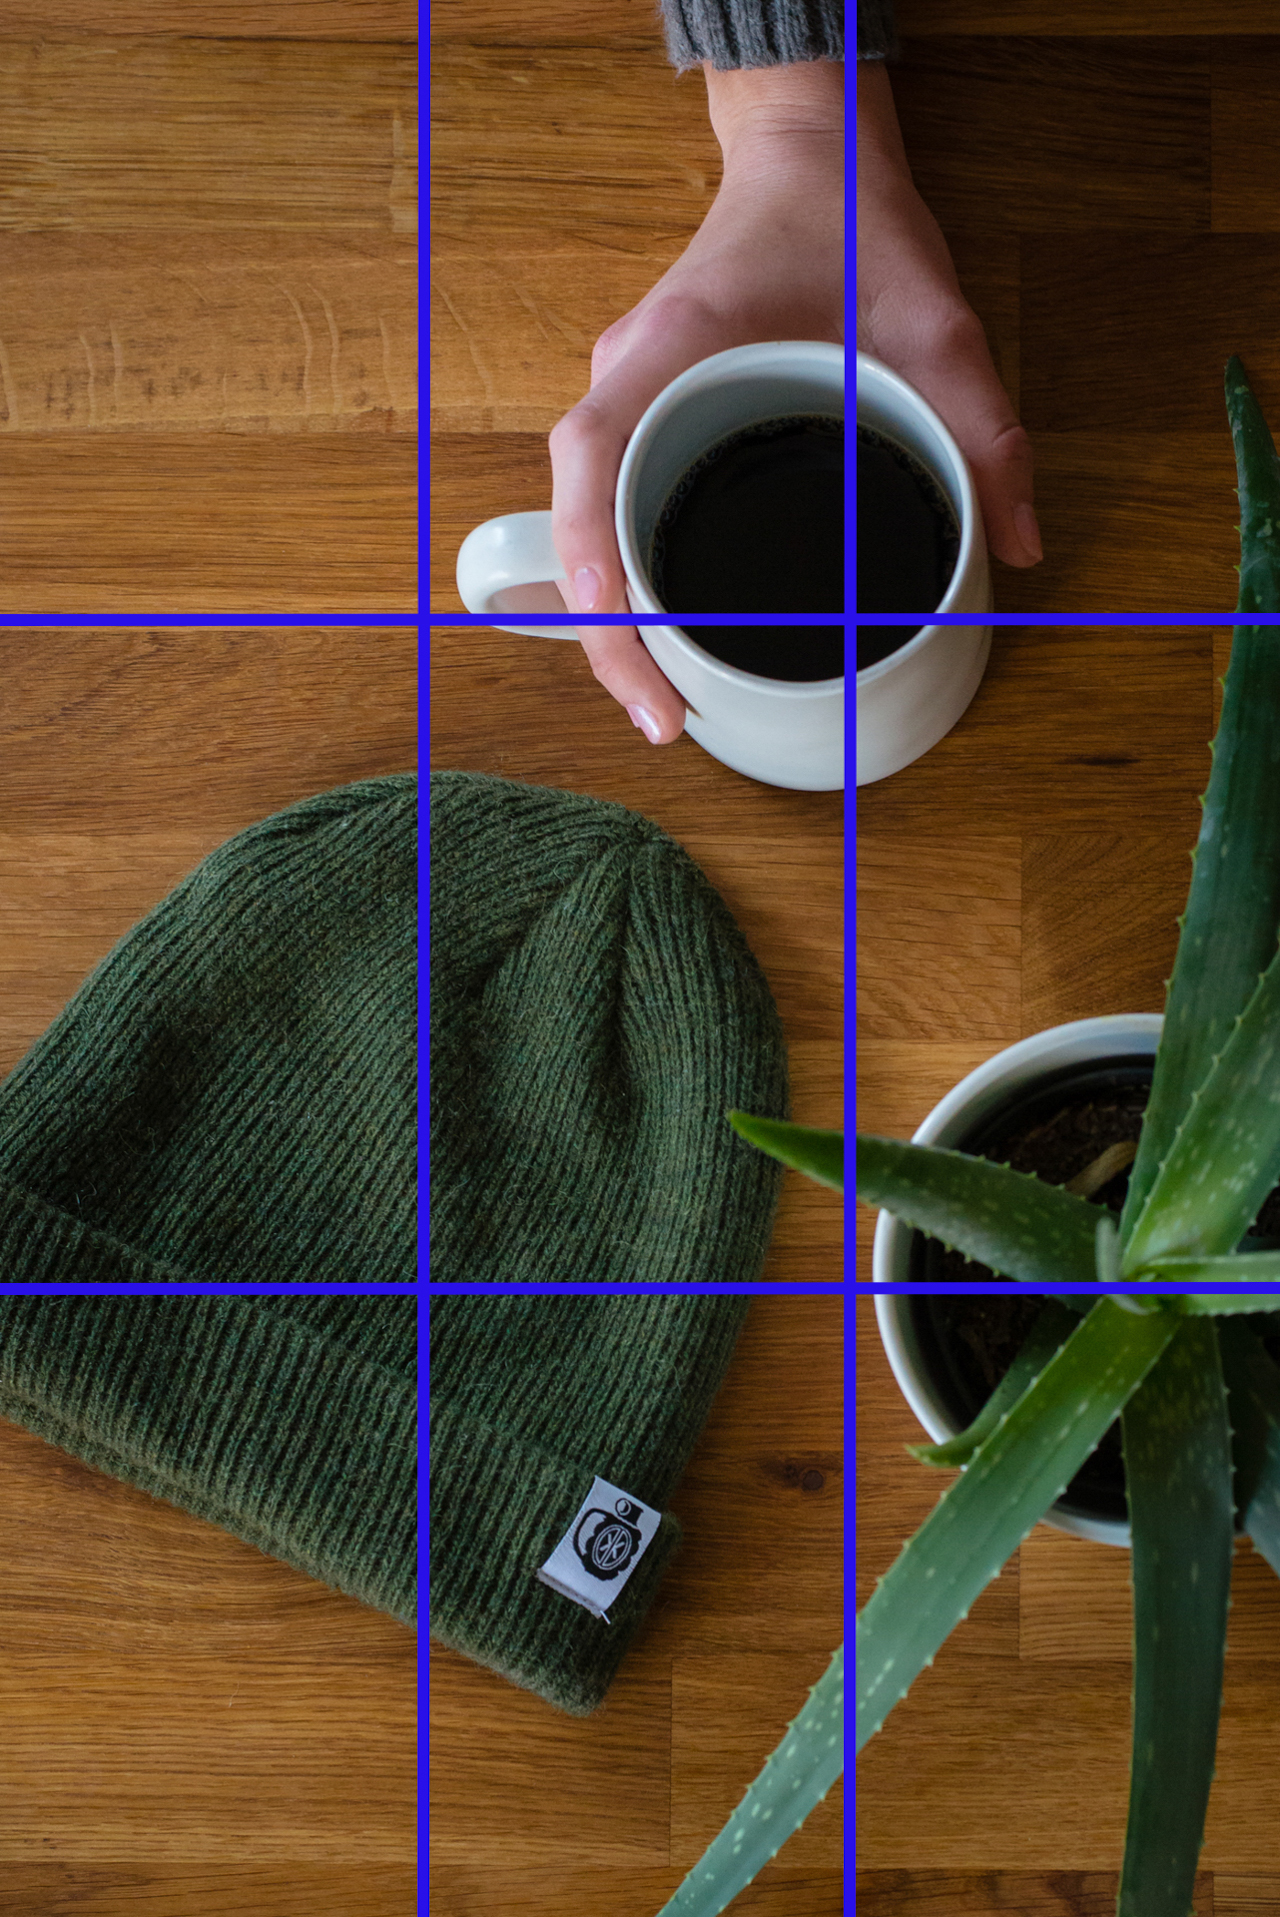 flat lay with a coffee cup, illustrating the rule of thirds, photographed by jamie bannon photography.